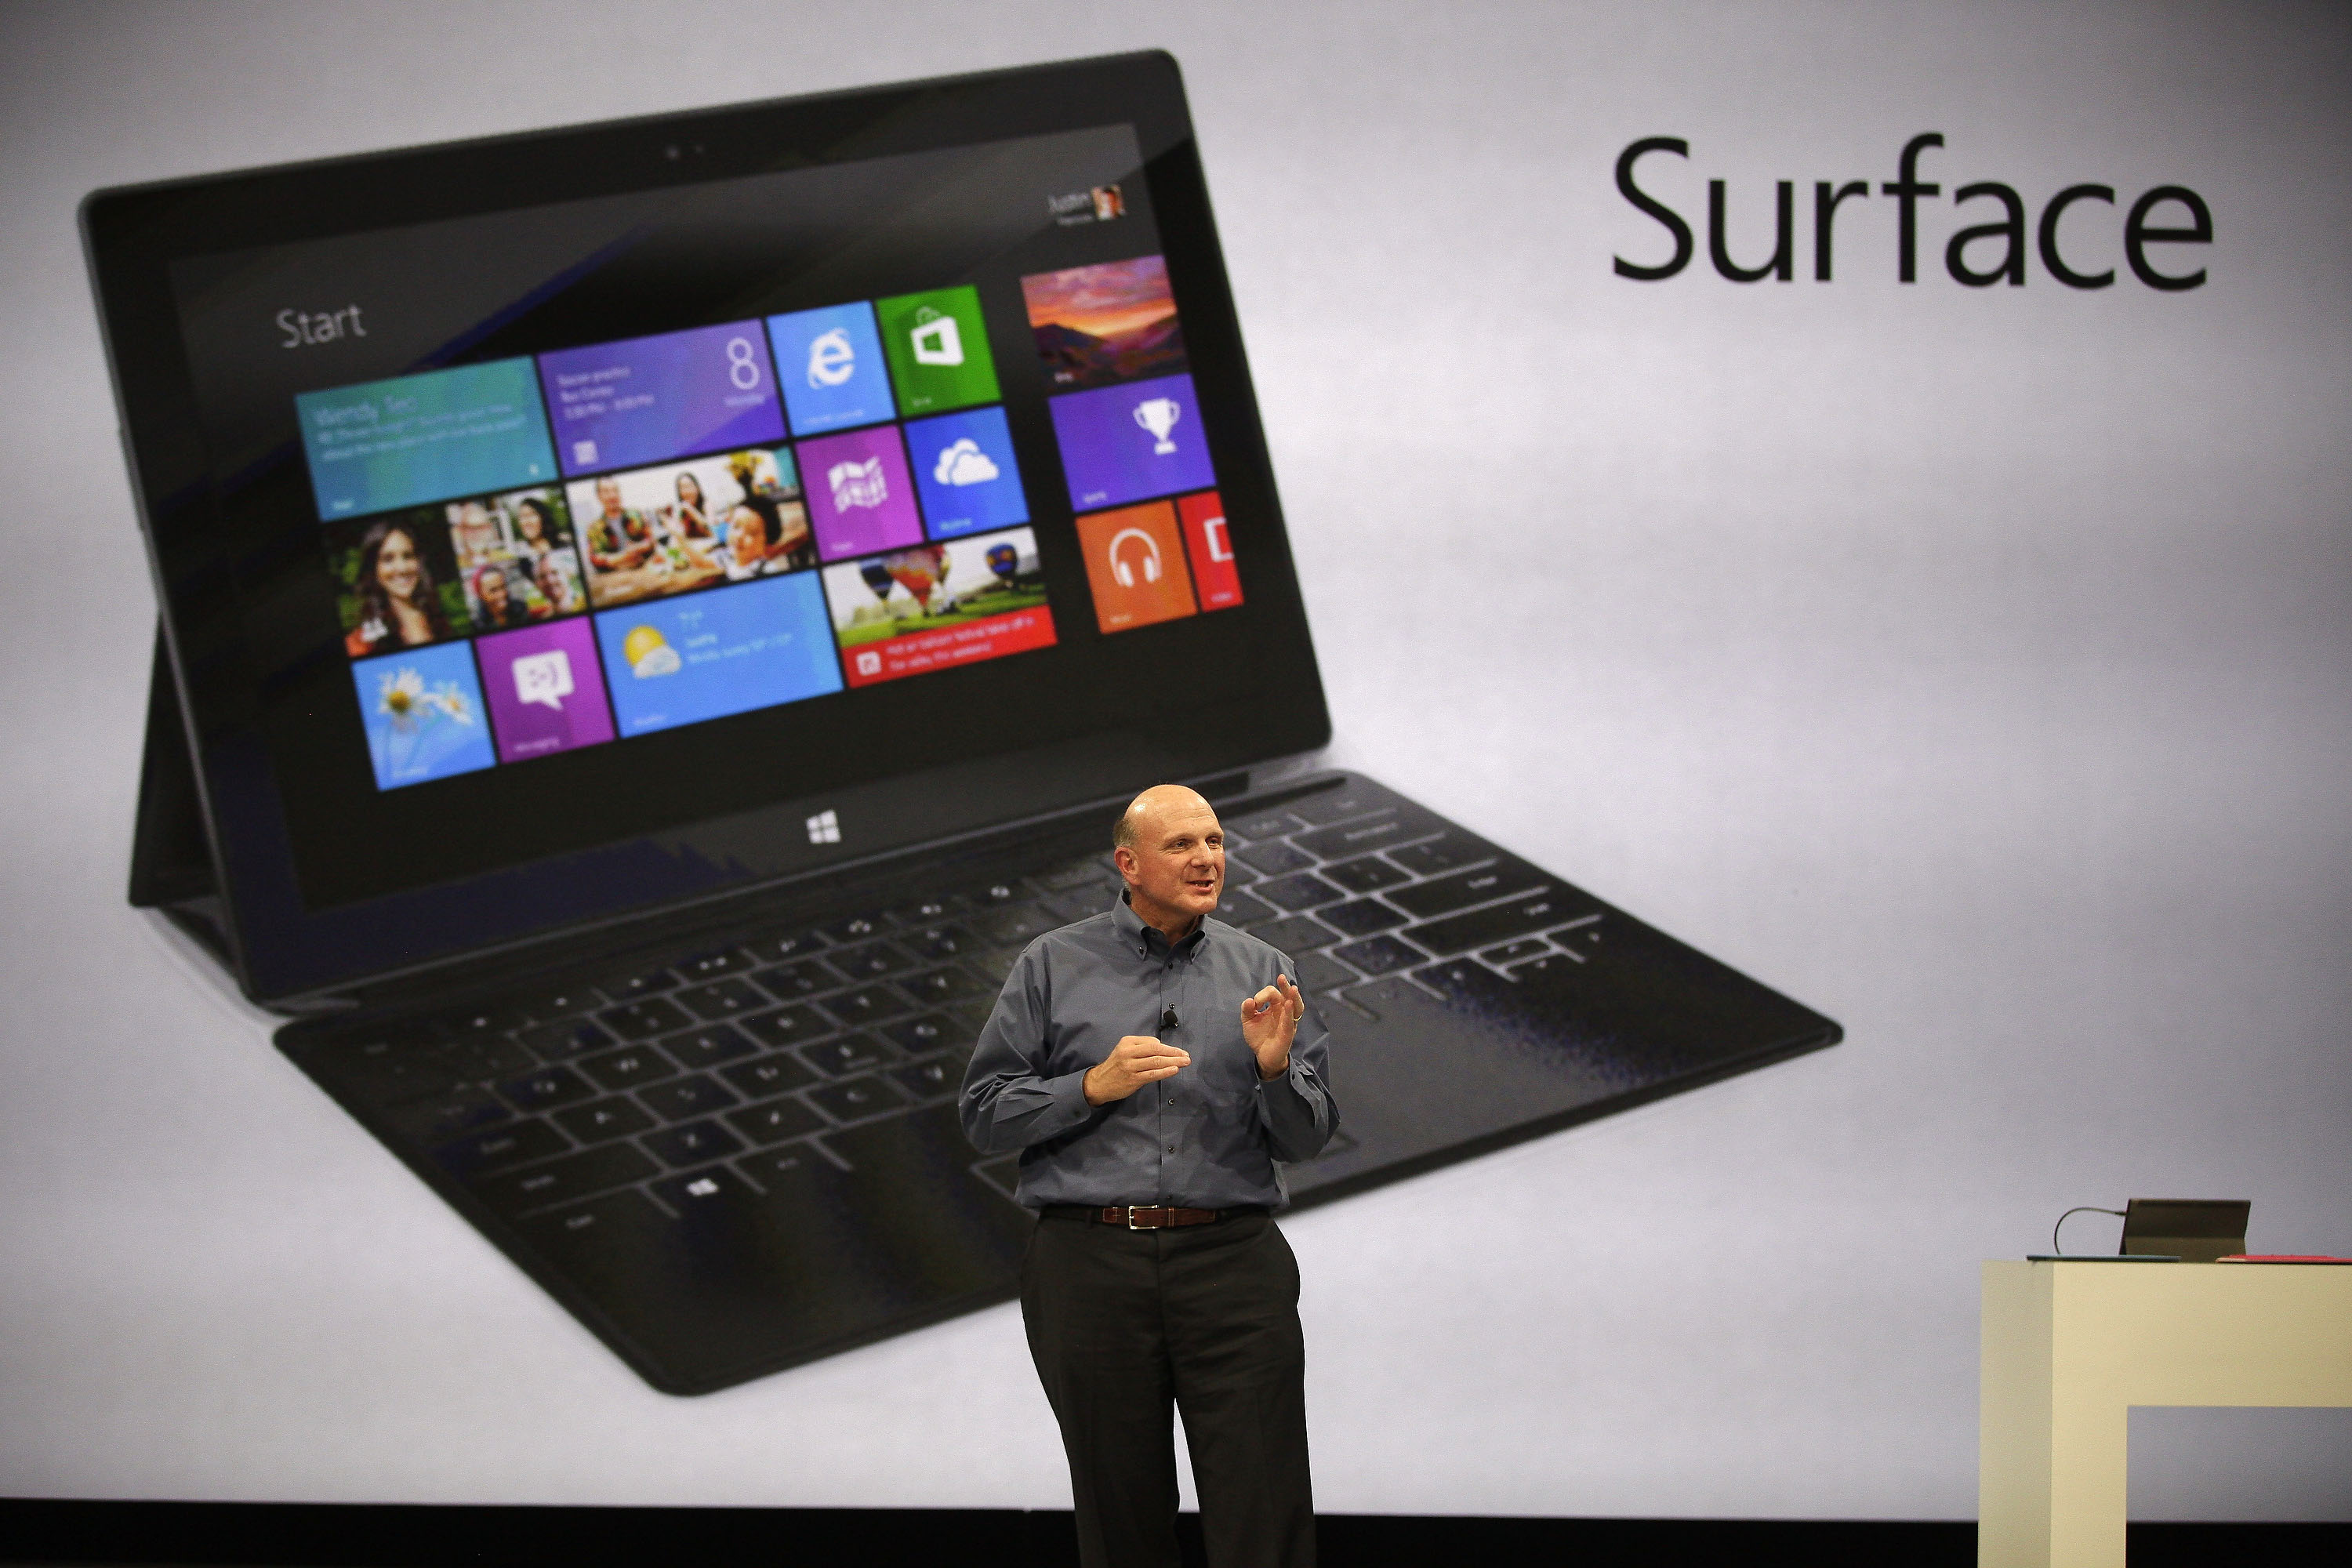 Los Angeles, CA - Microsoft Unveils 'Surface' Tablet Computer